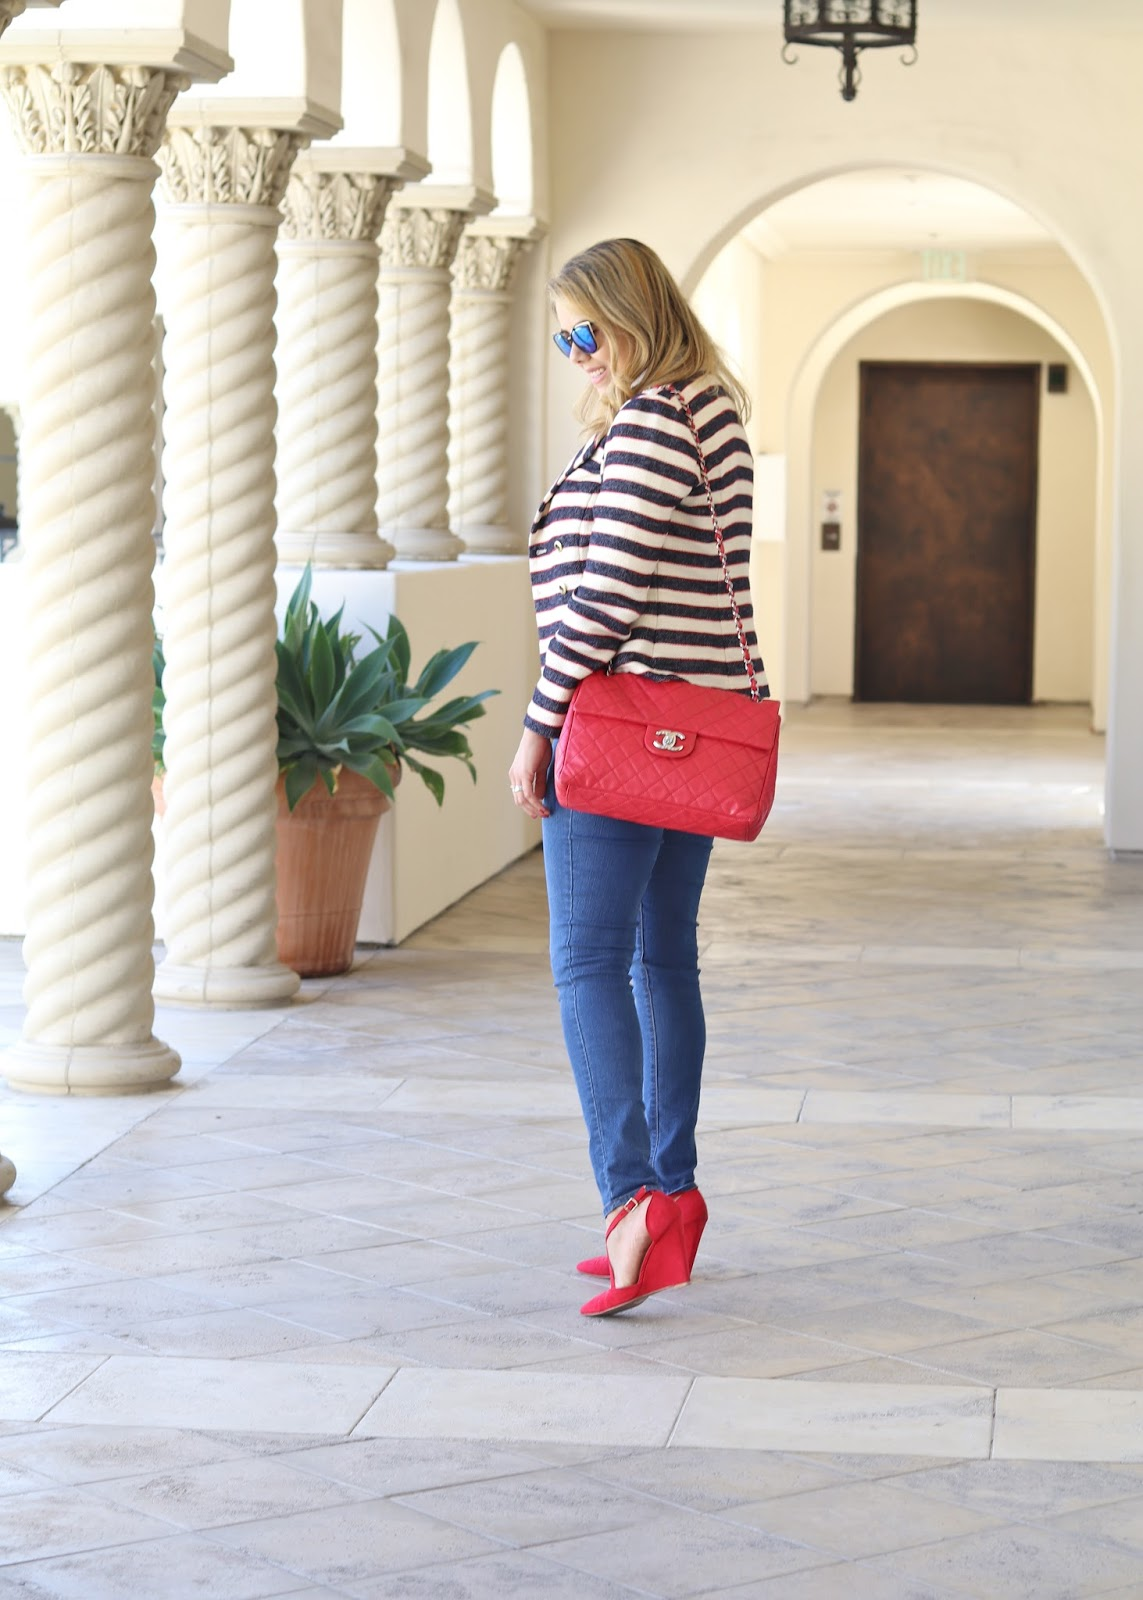 How to wear a red chanel handbag, cabi cruise jacket, cabi blogger